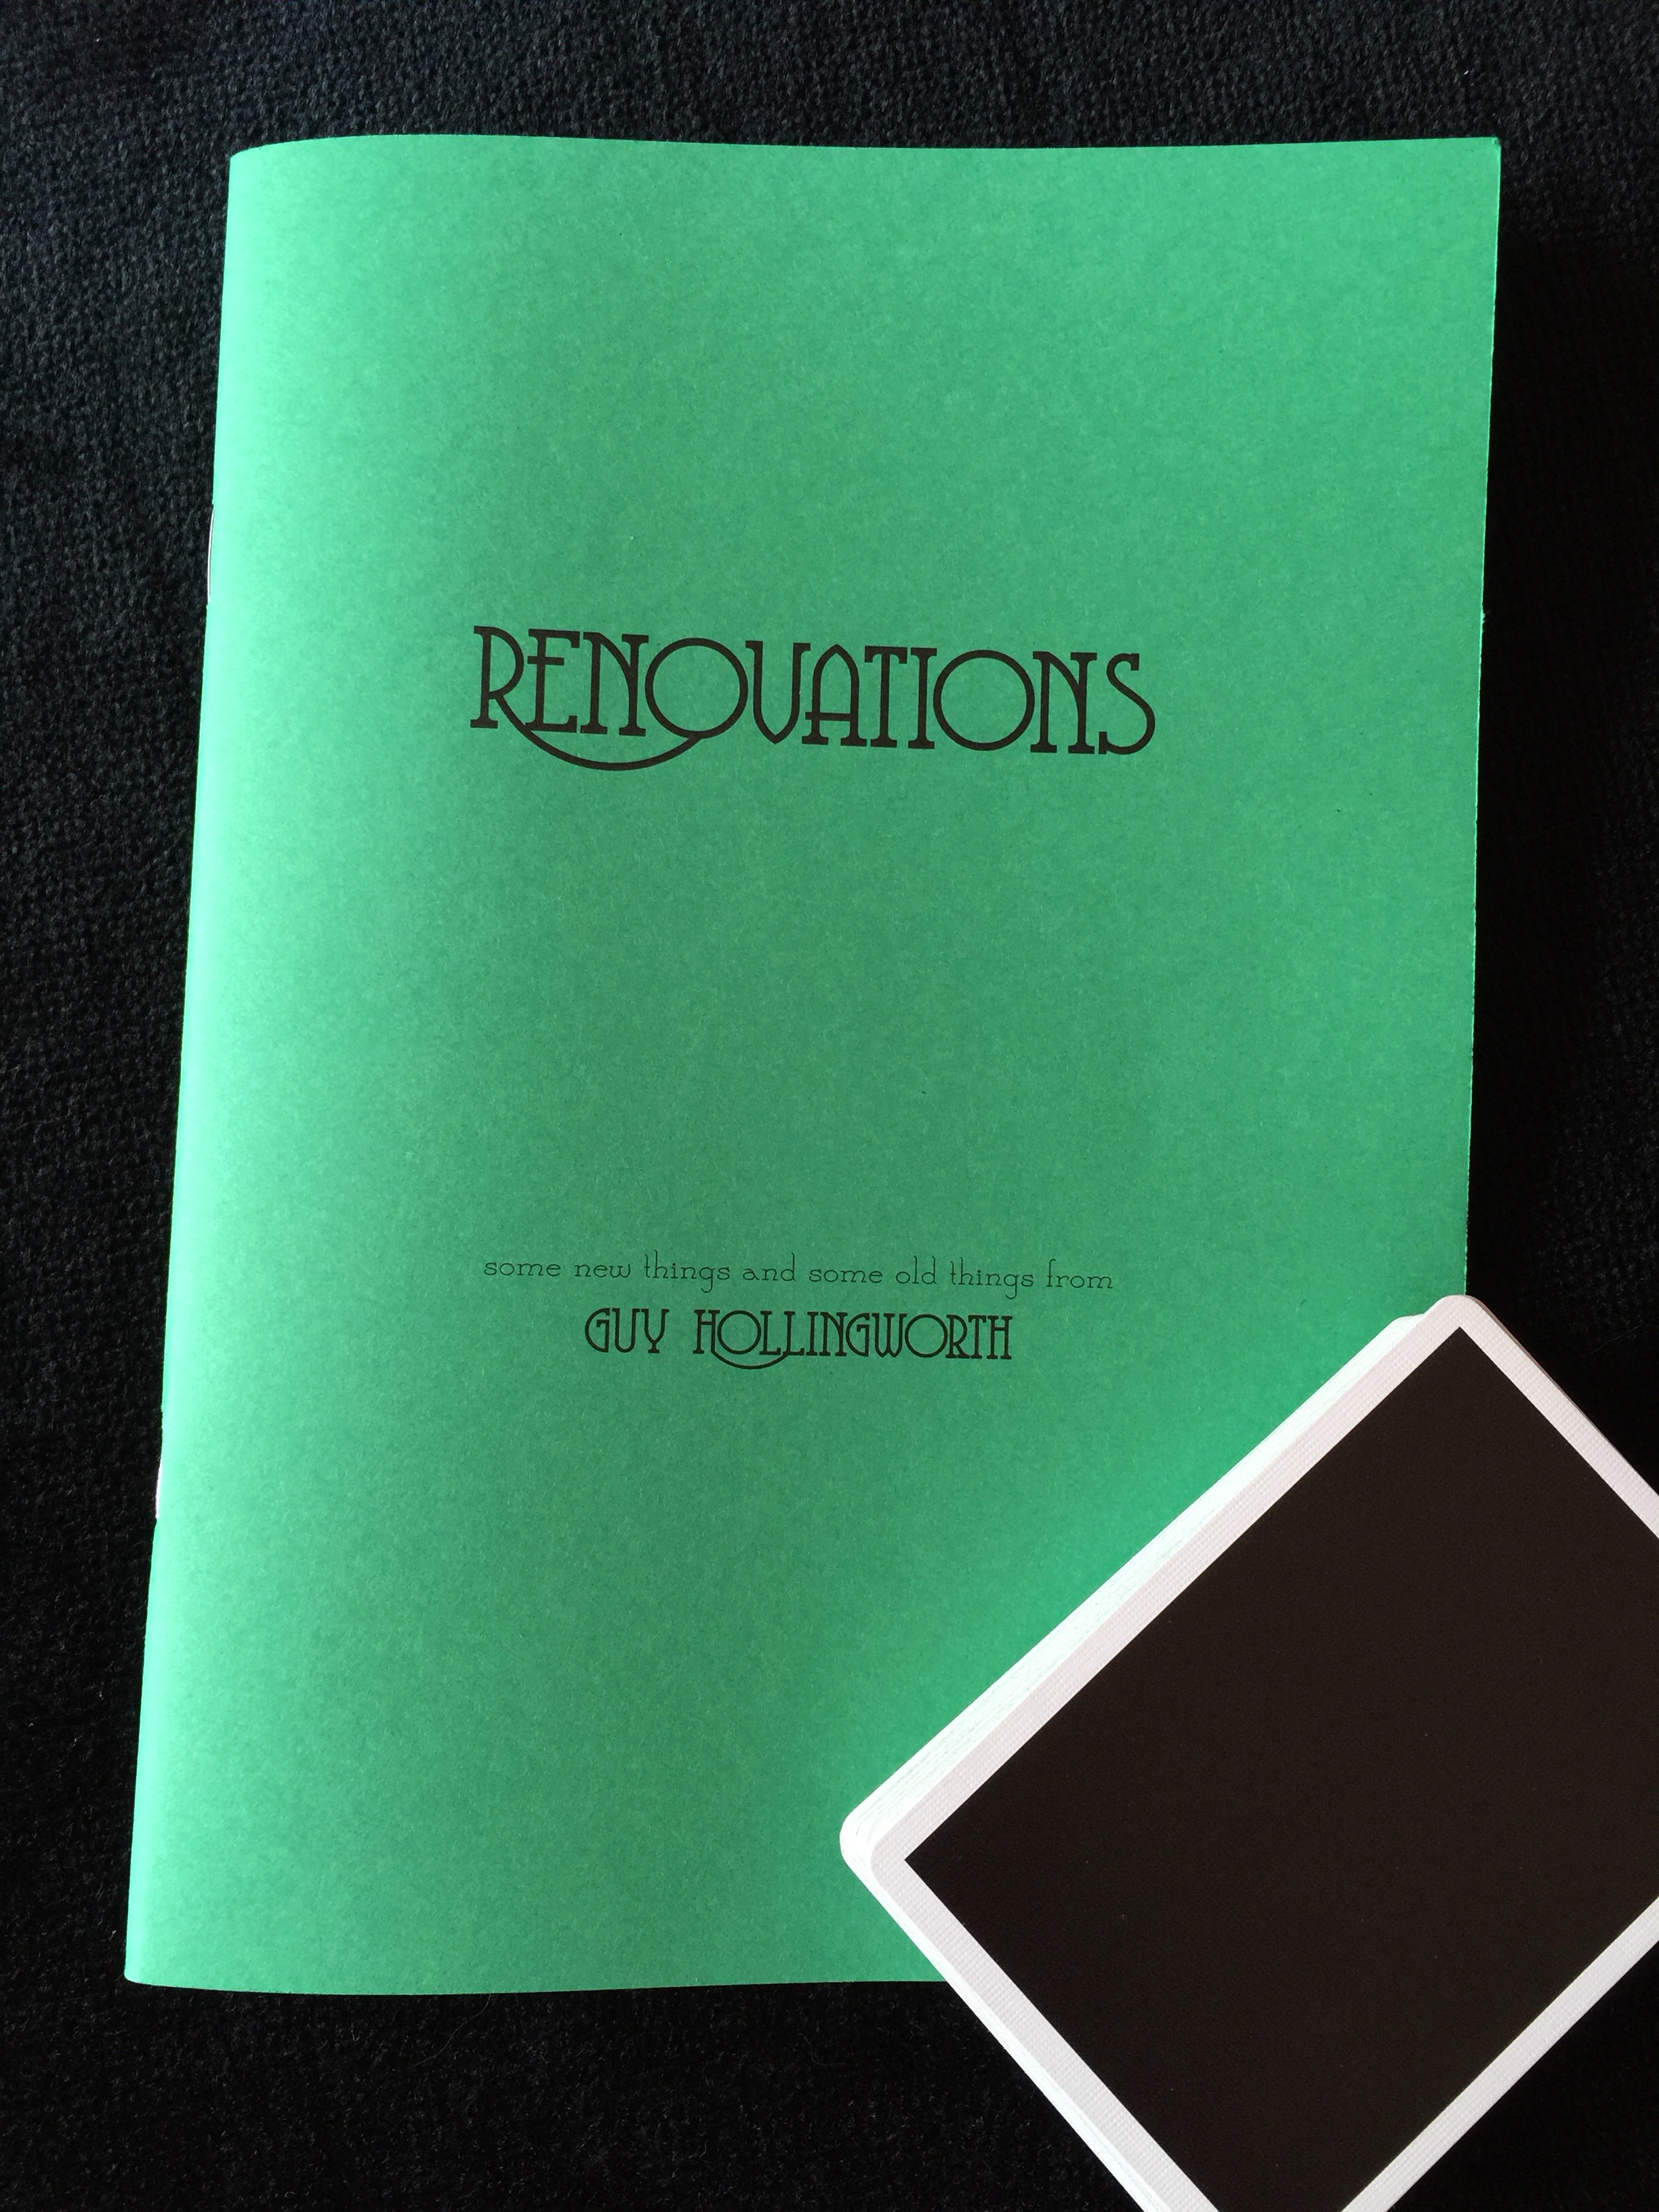 Guy Hollingworth's Renovations Book